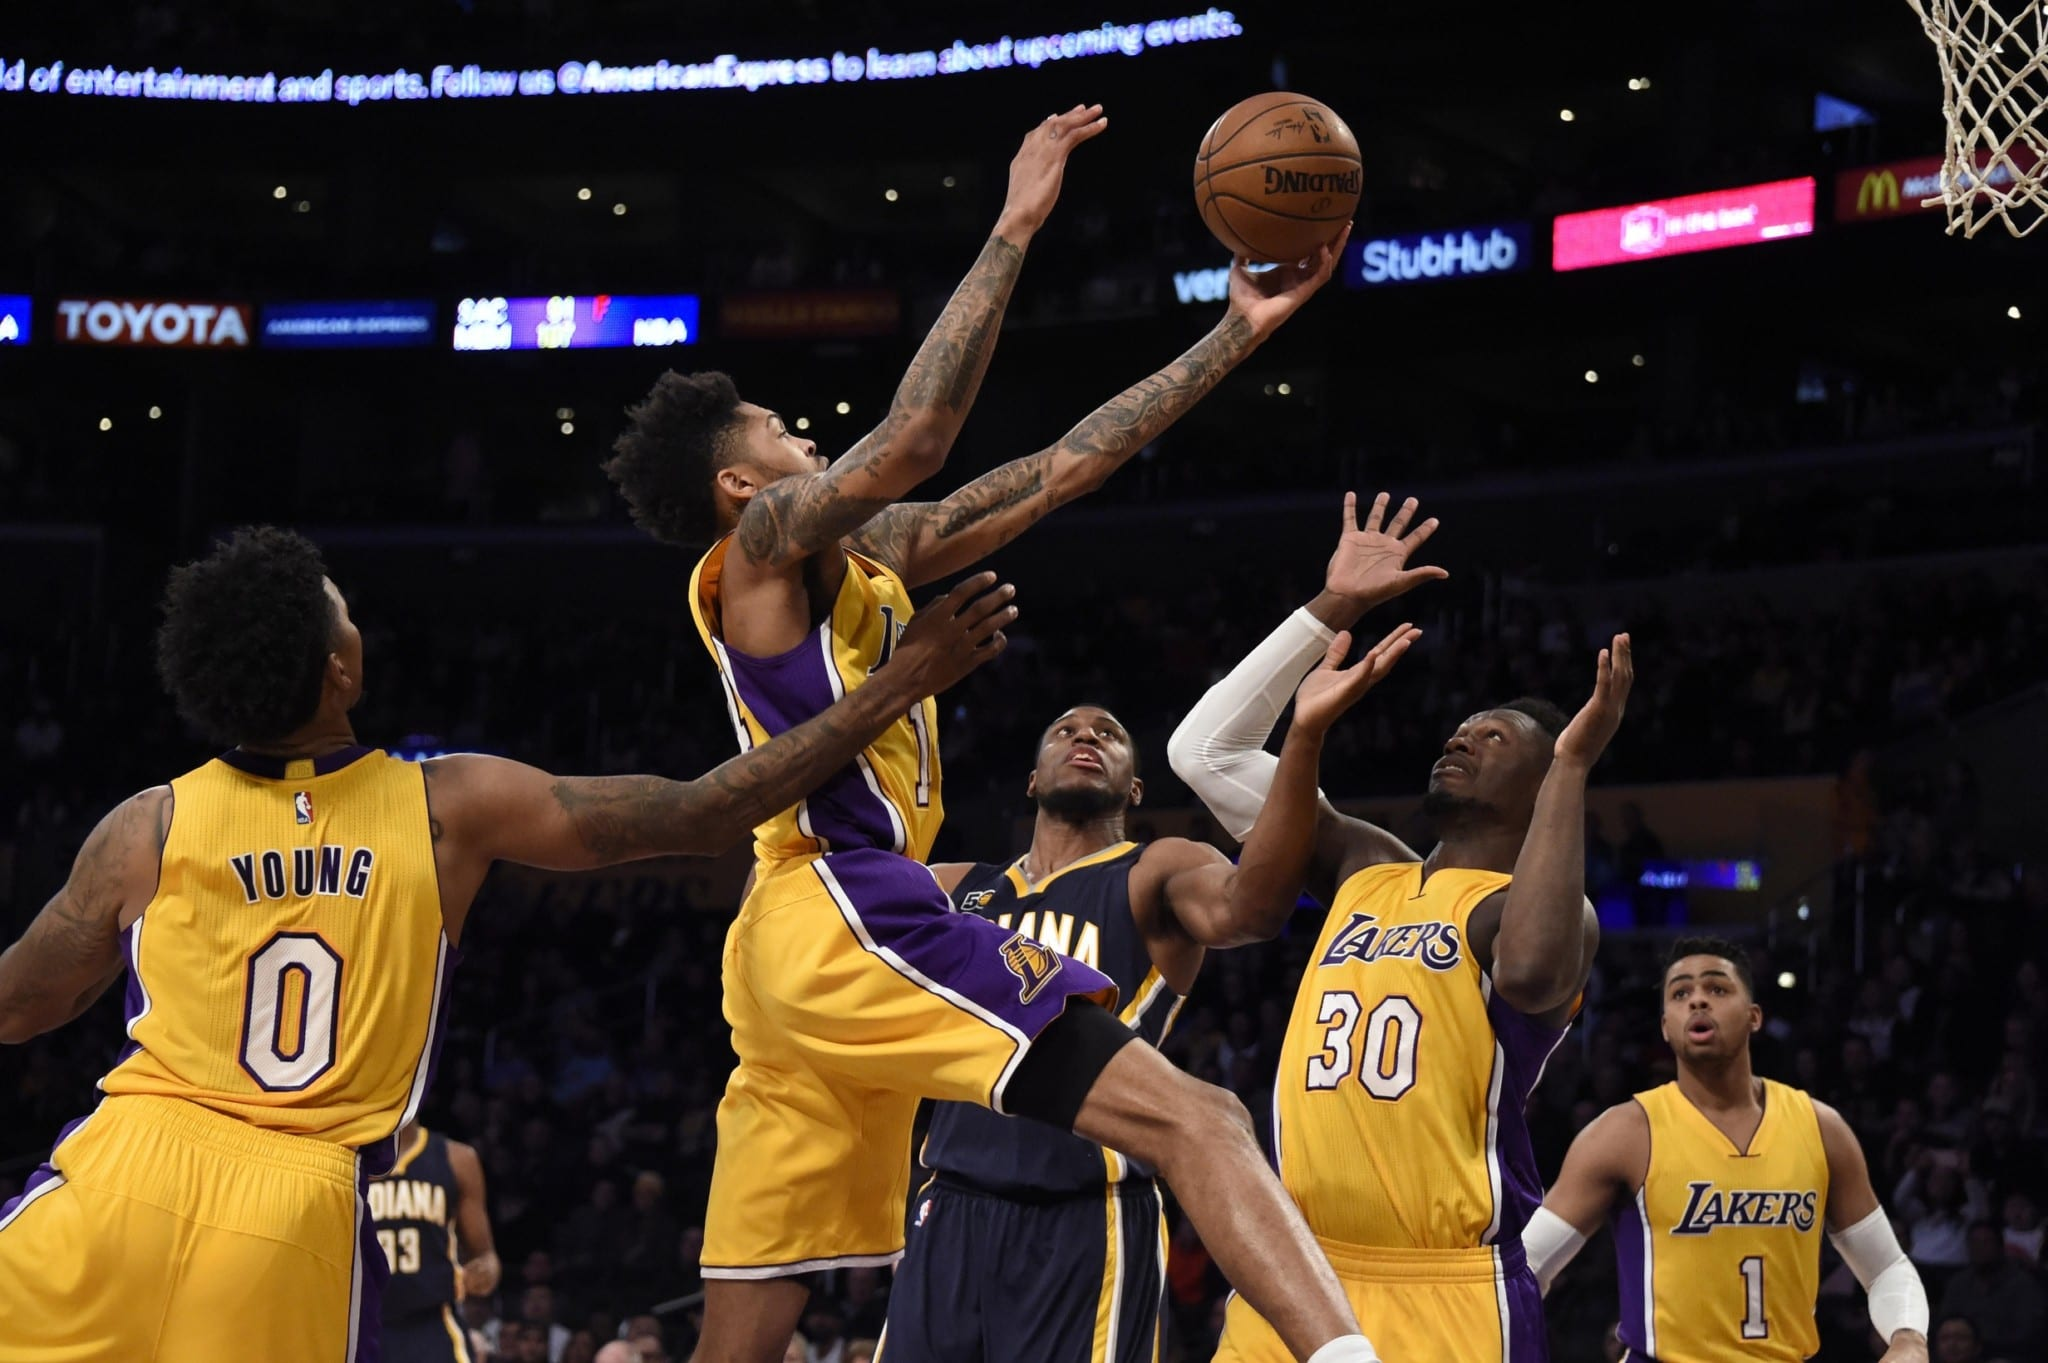 Luke Walton Believes Brandon Ingram Was The Best Player On The Floor At Times Vs. Pacers